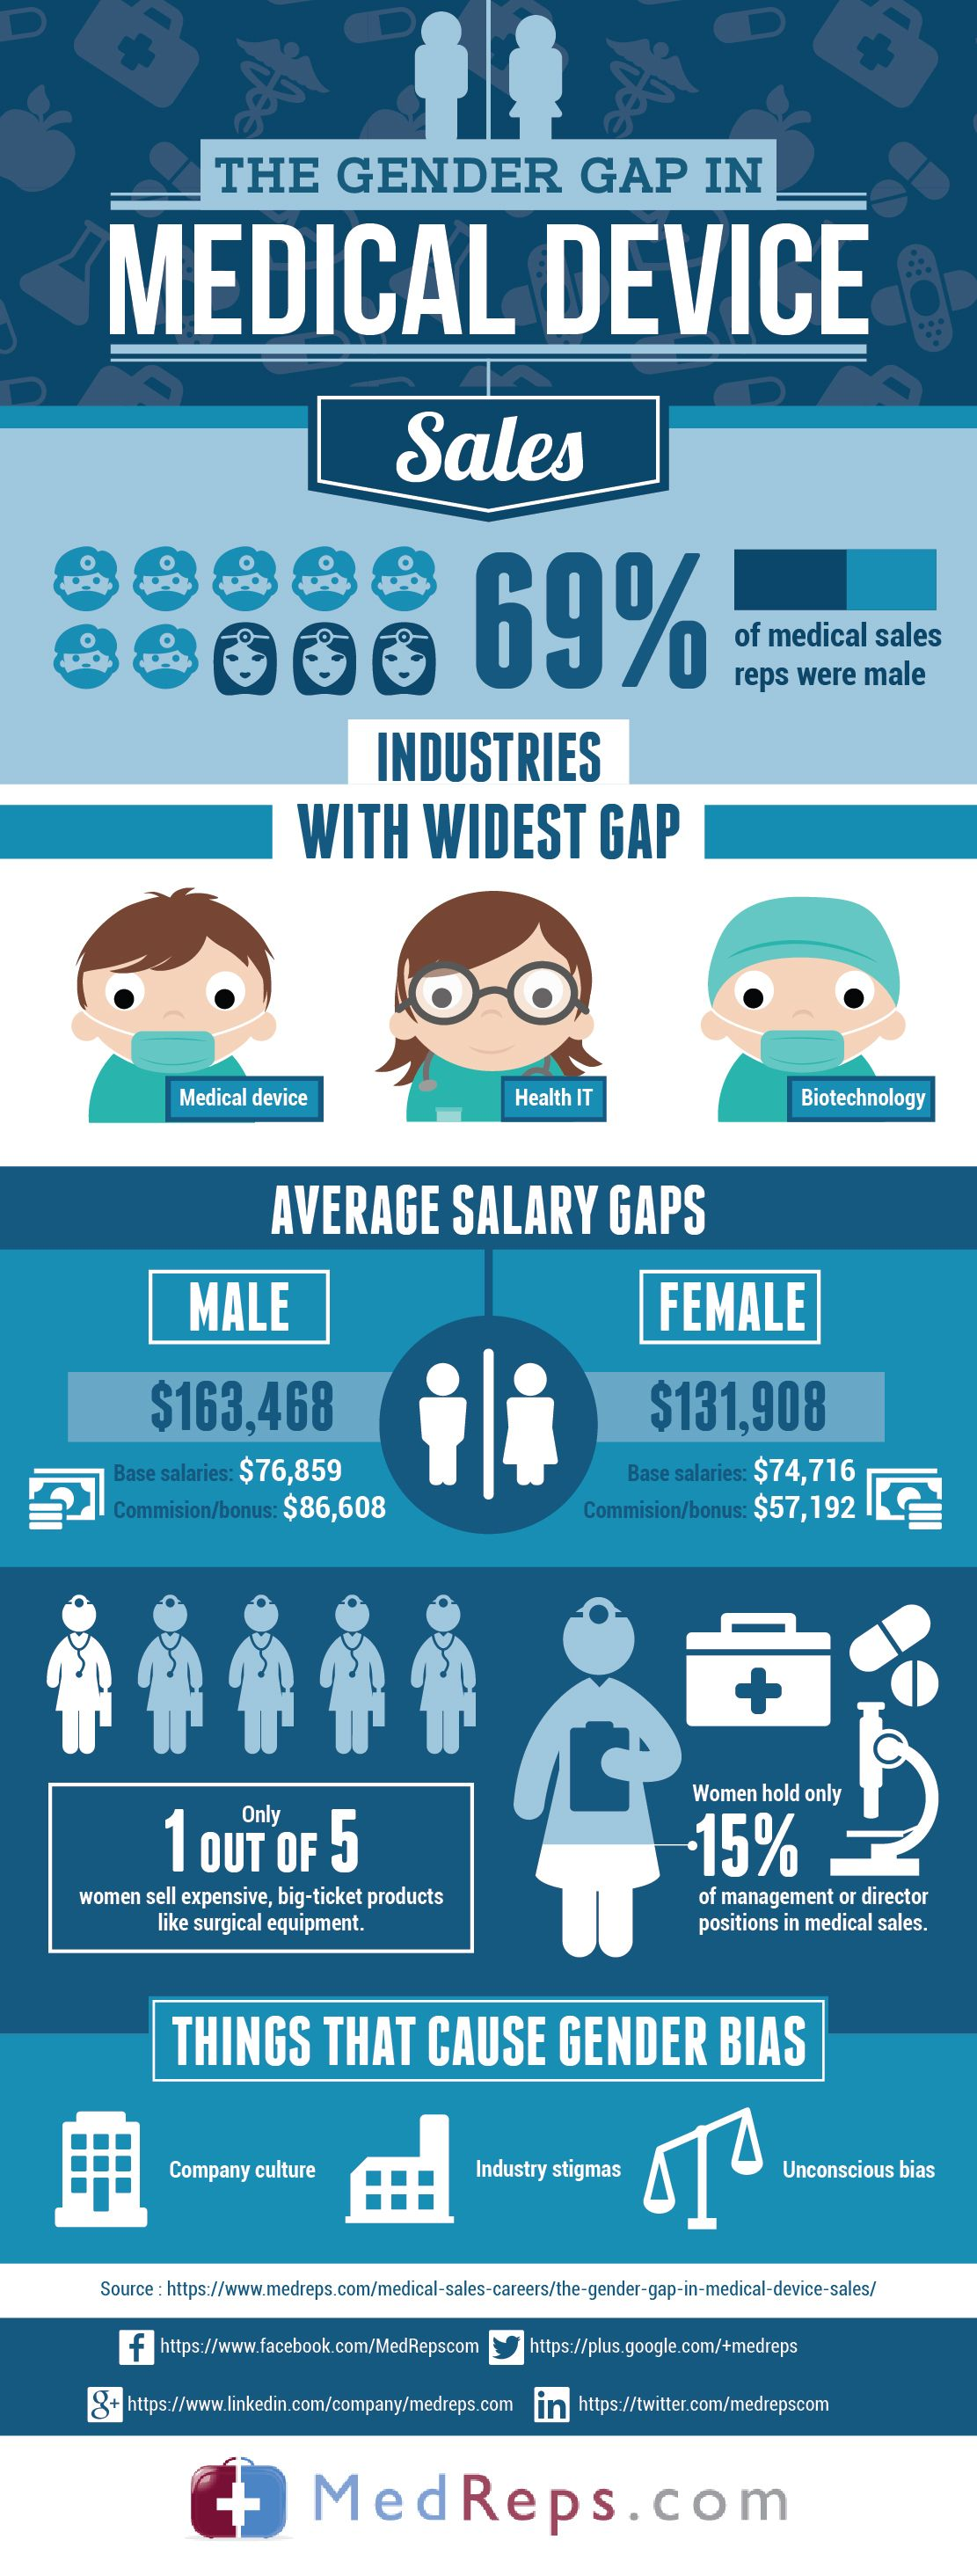 The Gender Gap in Medical Device Sales #medicaldevice #sales